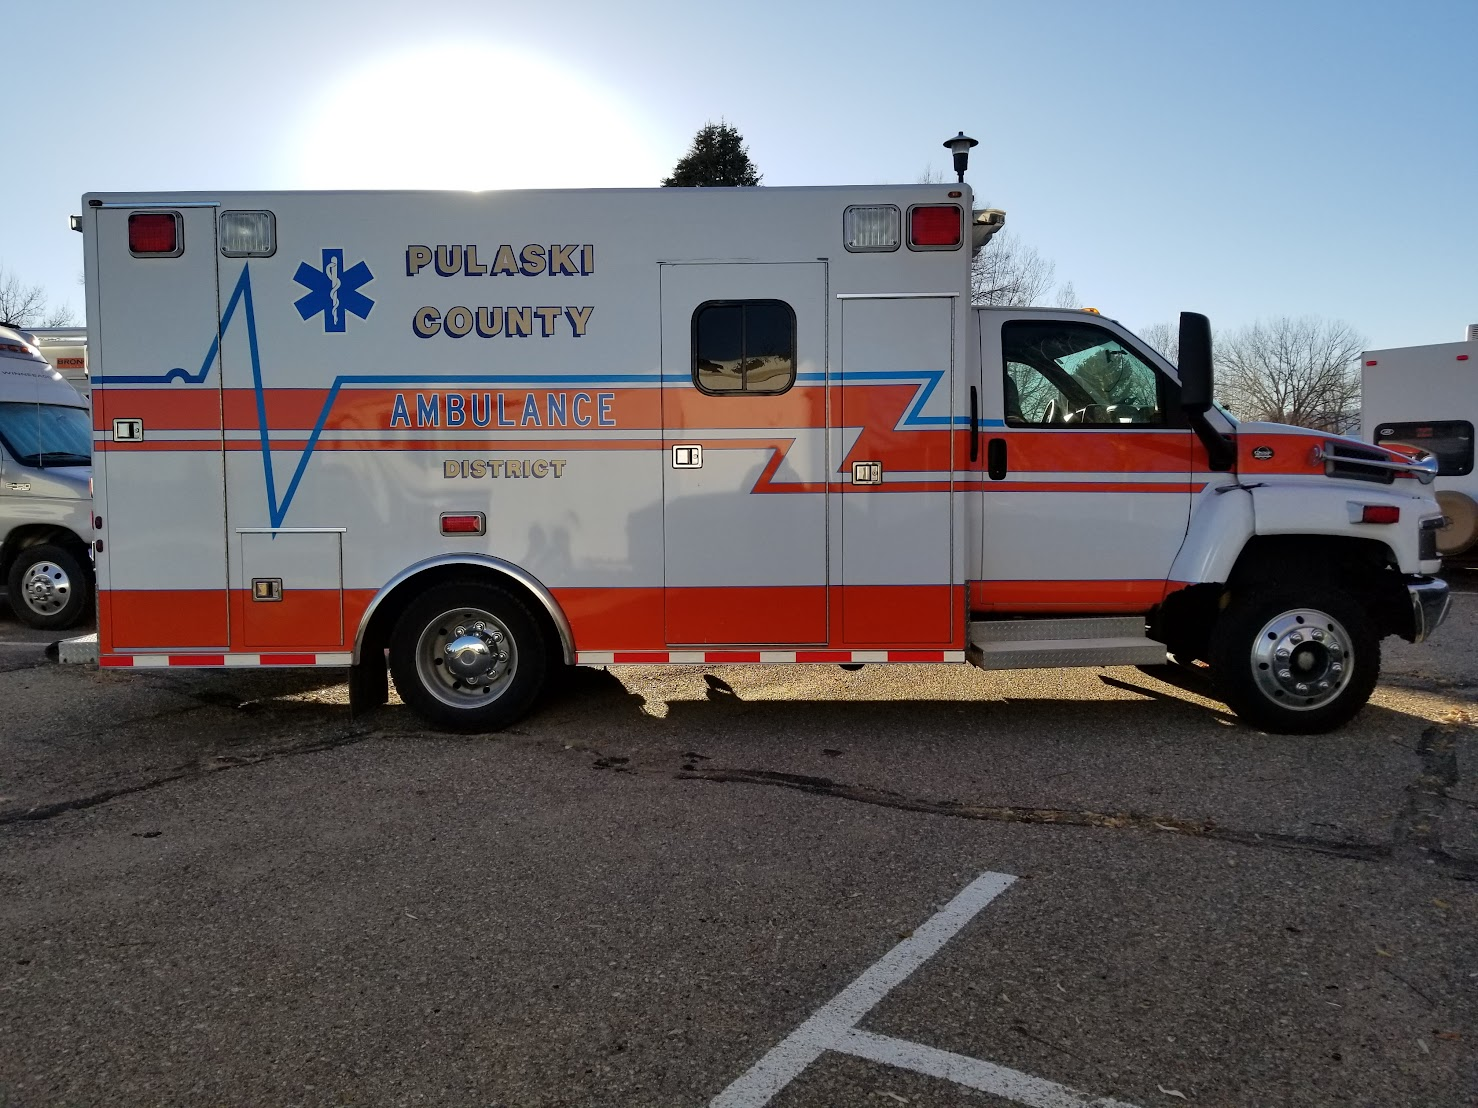 All Chevy chevy c4500 : 2008 Chevy C4500 Ambulances - $12,000 obo each - Only 1 left!!!!!